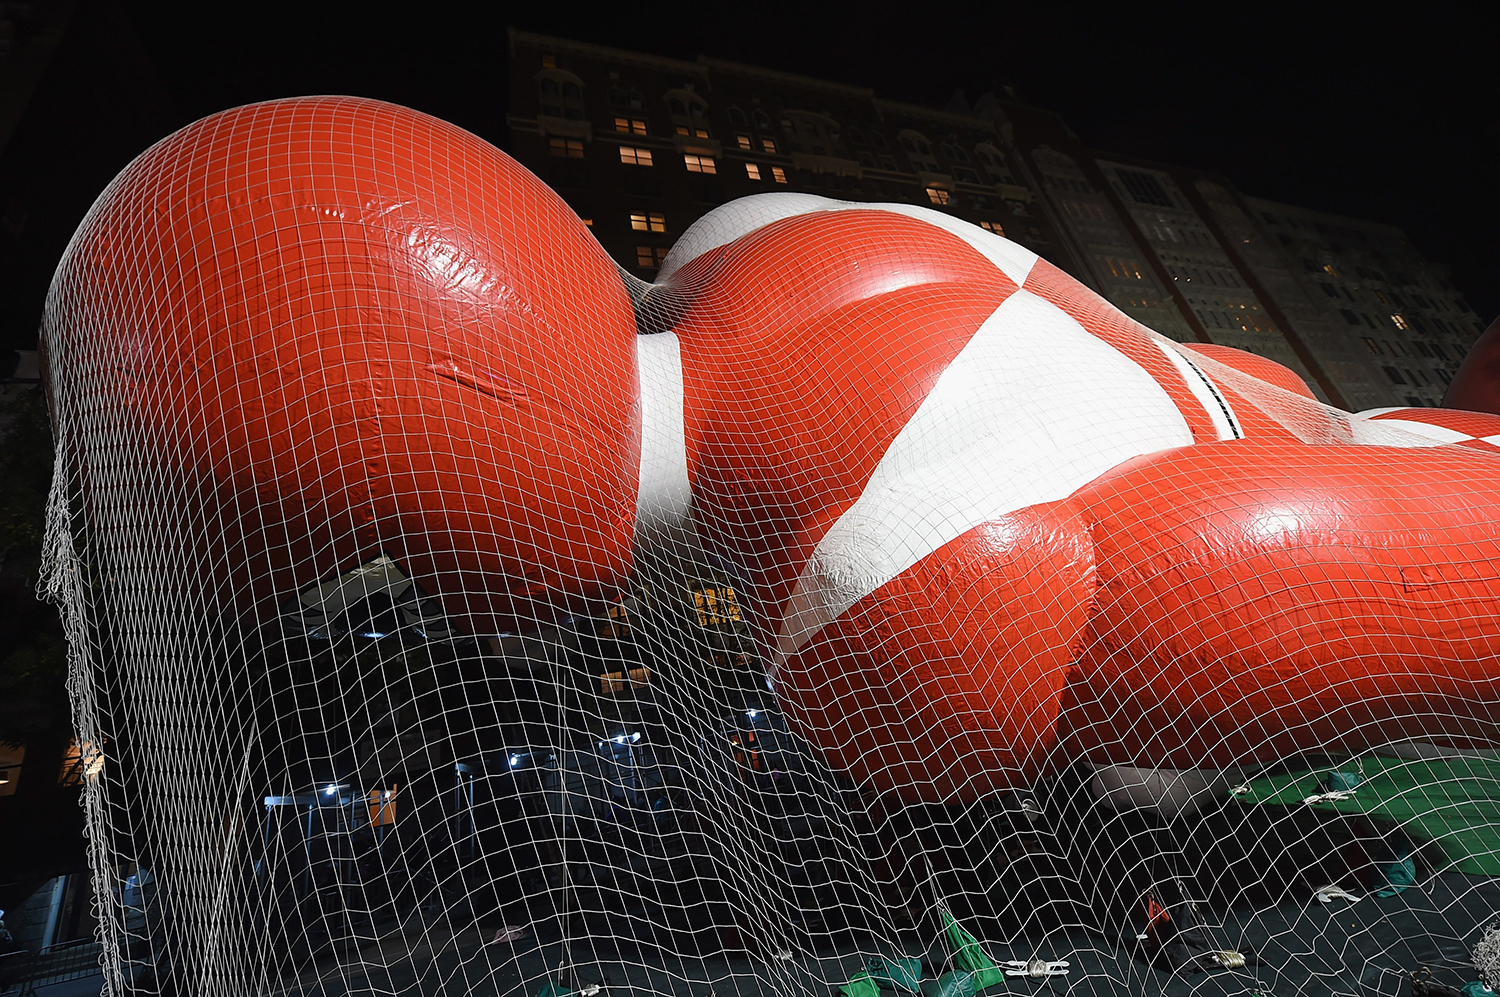 NEW YORK, NY - NOVEMBER 25: General view of the Red Mighty Morphin Power Ranger balloon during the 89th Annual Macy's Thanksgiving Day Inflation Eve on November 25, 2015 in New York City. Michael Loccisano/Getty Images/AFP